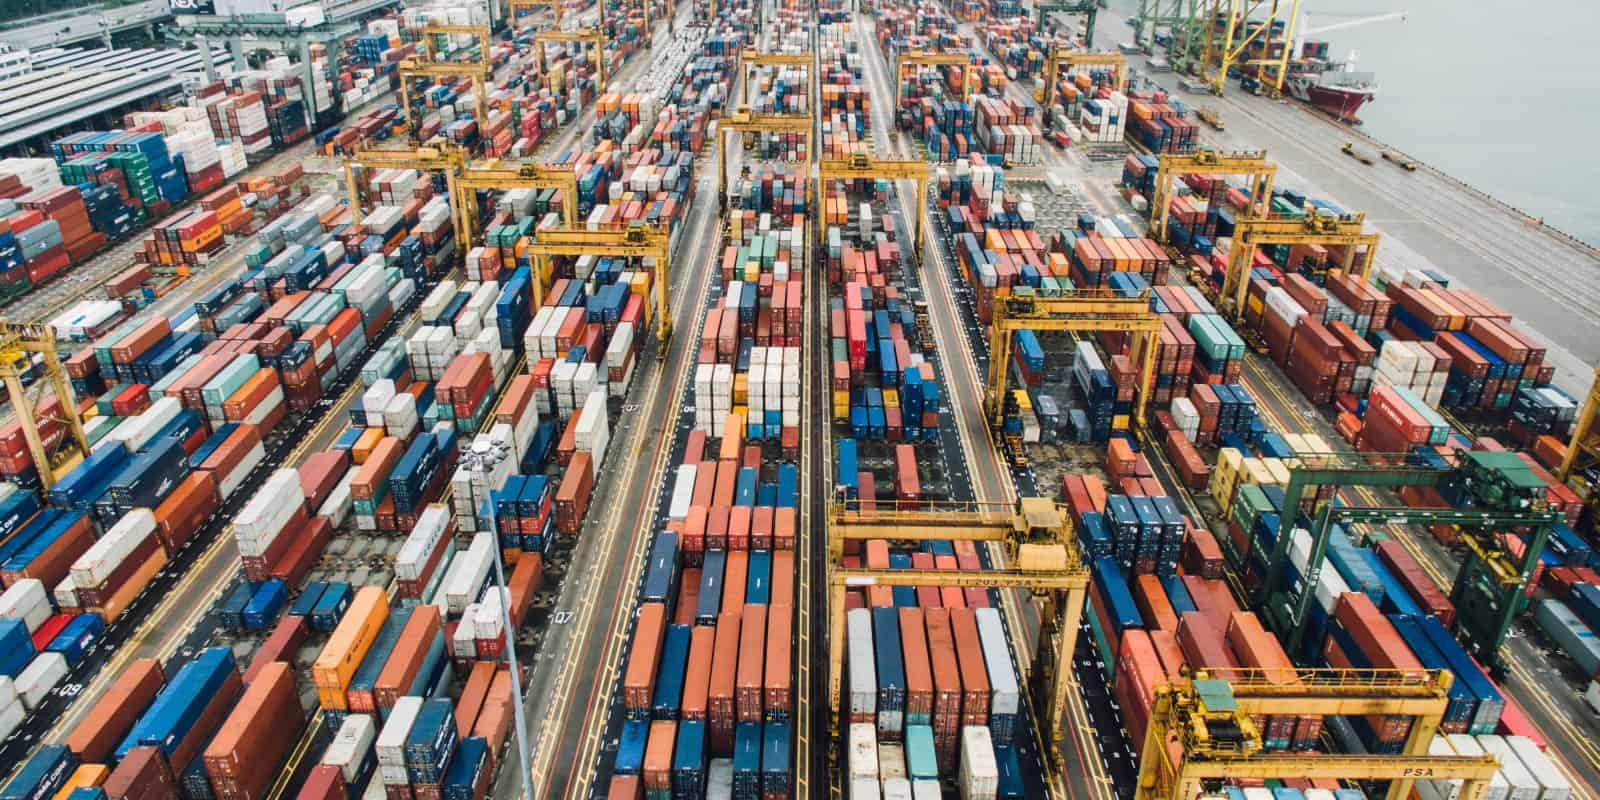 Aerial shot of thousands of shipping containers wharfside at a port